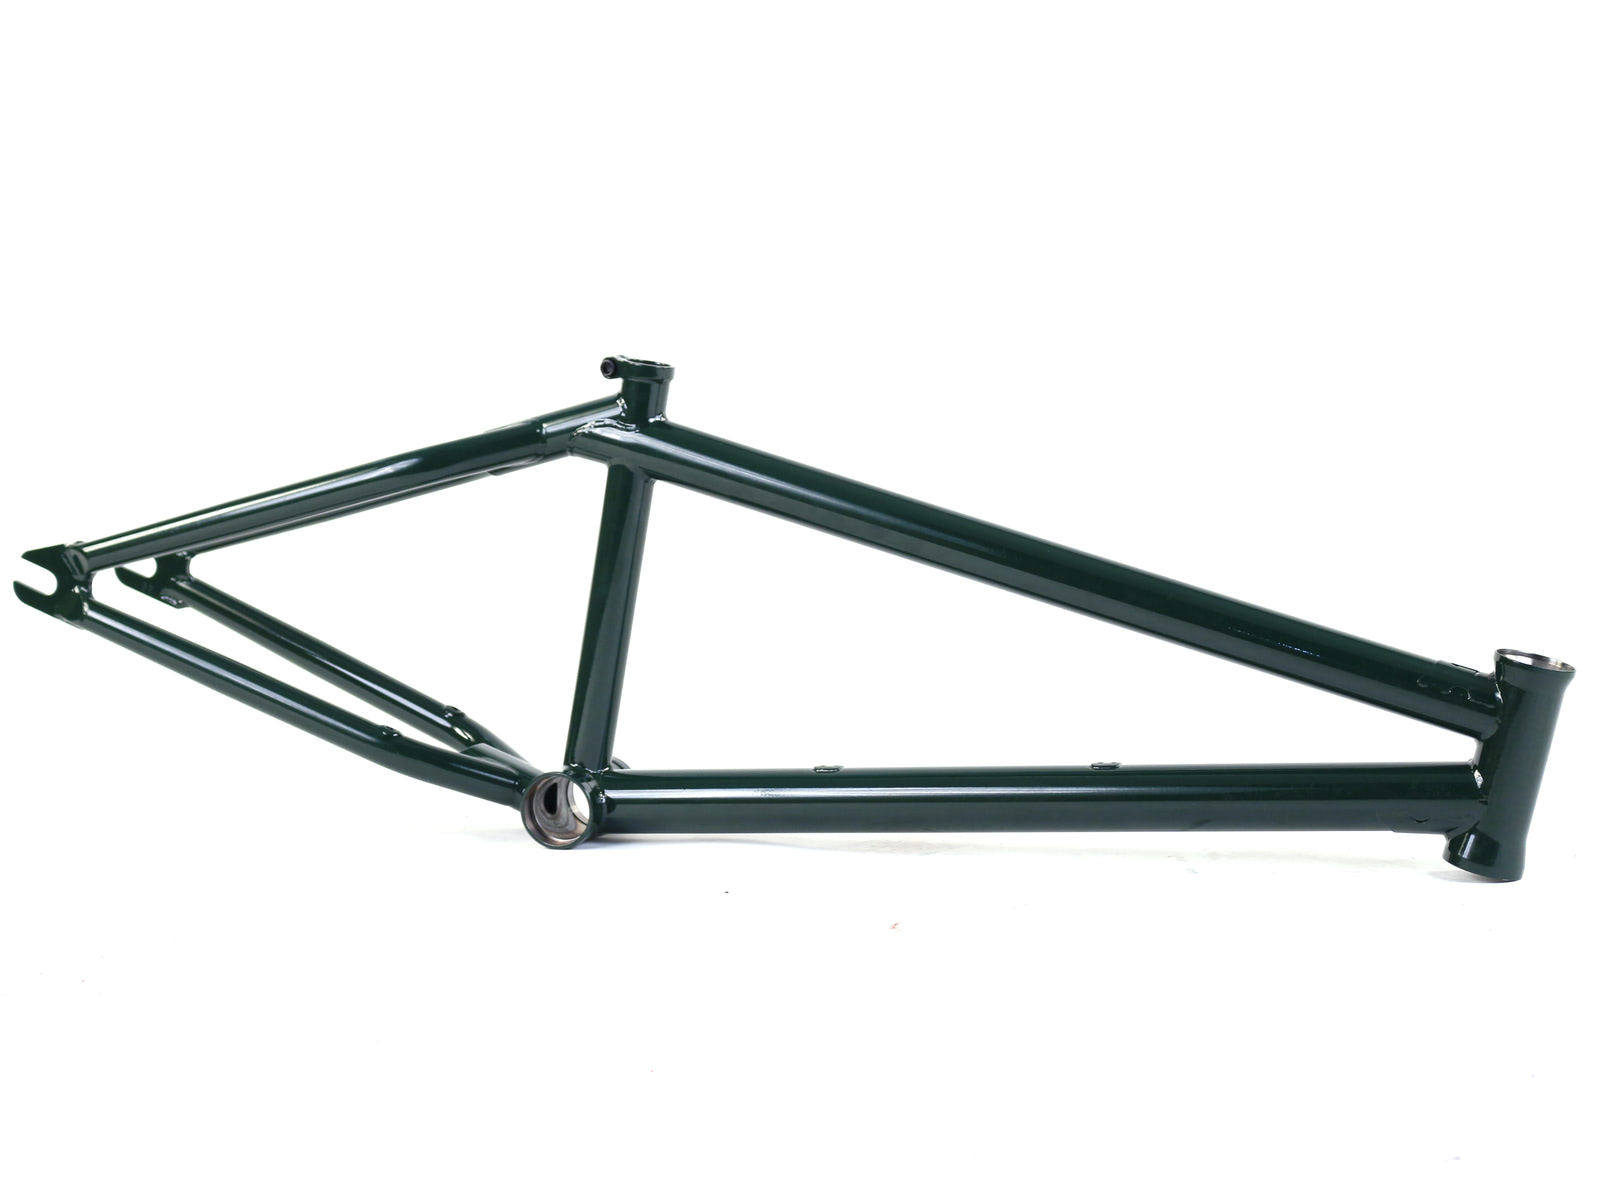 1cf57cf02a3f Terrible One Barcode Frame (2016) - Buy online at LUXBMX.COM